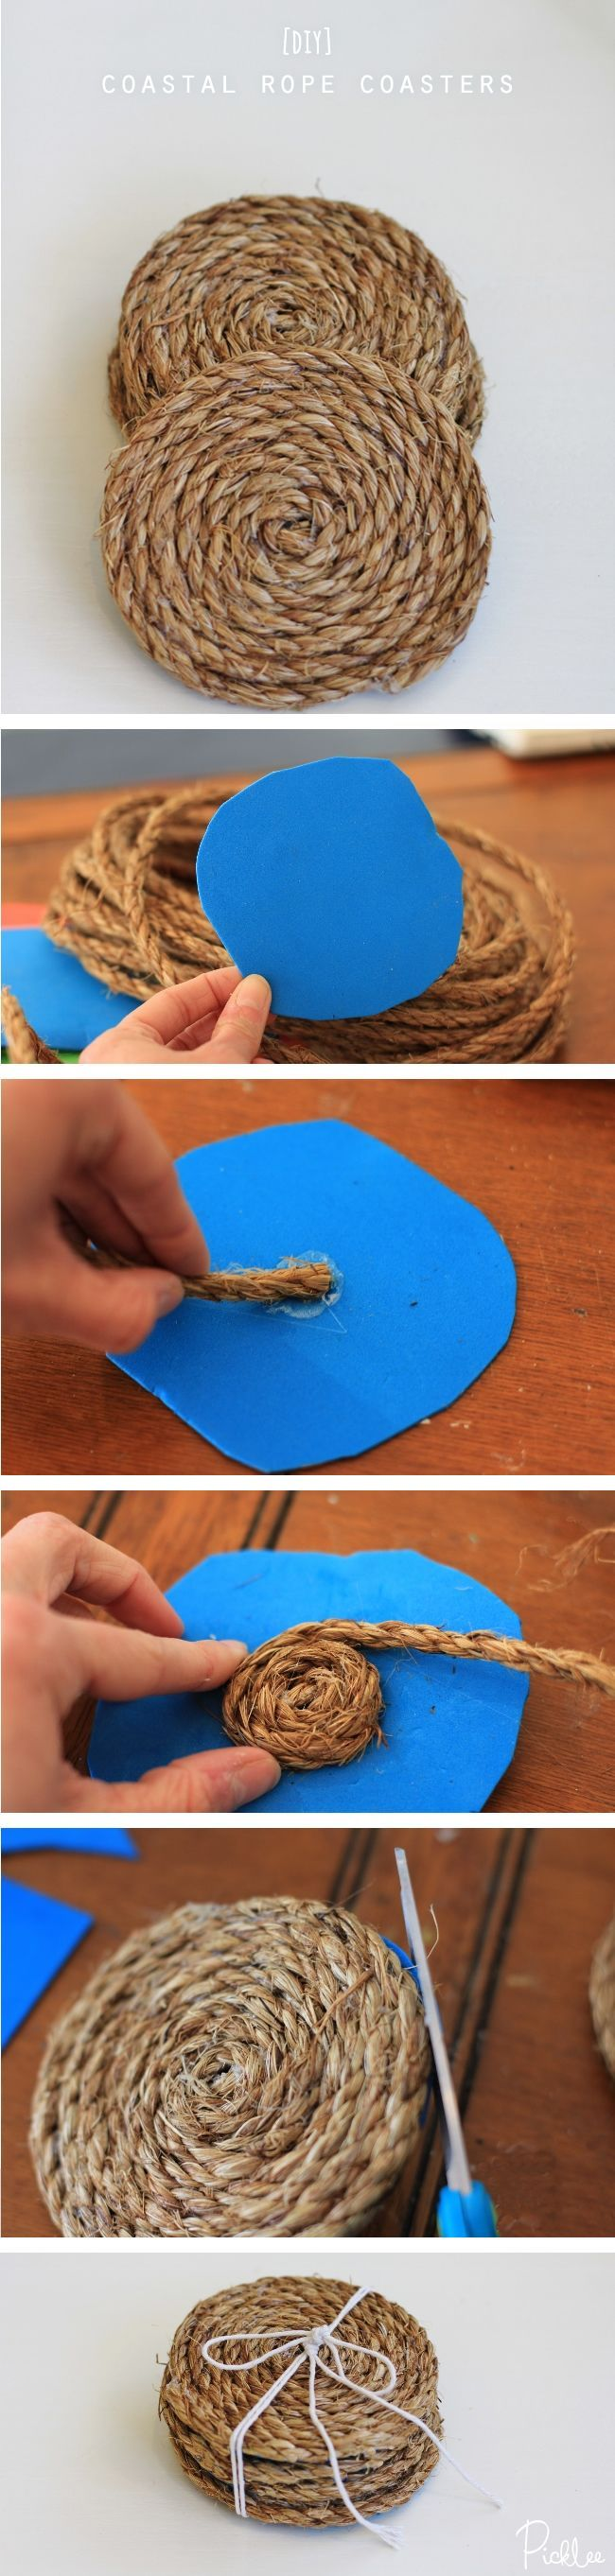 DIY Coastal Rope Coasters, SUPER SIMPLE! is part of Diy coasters -